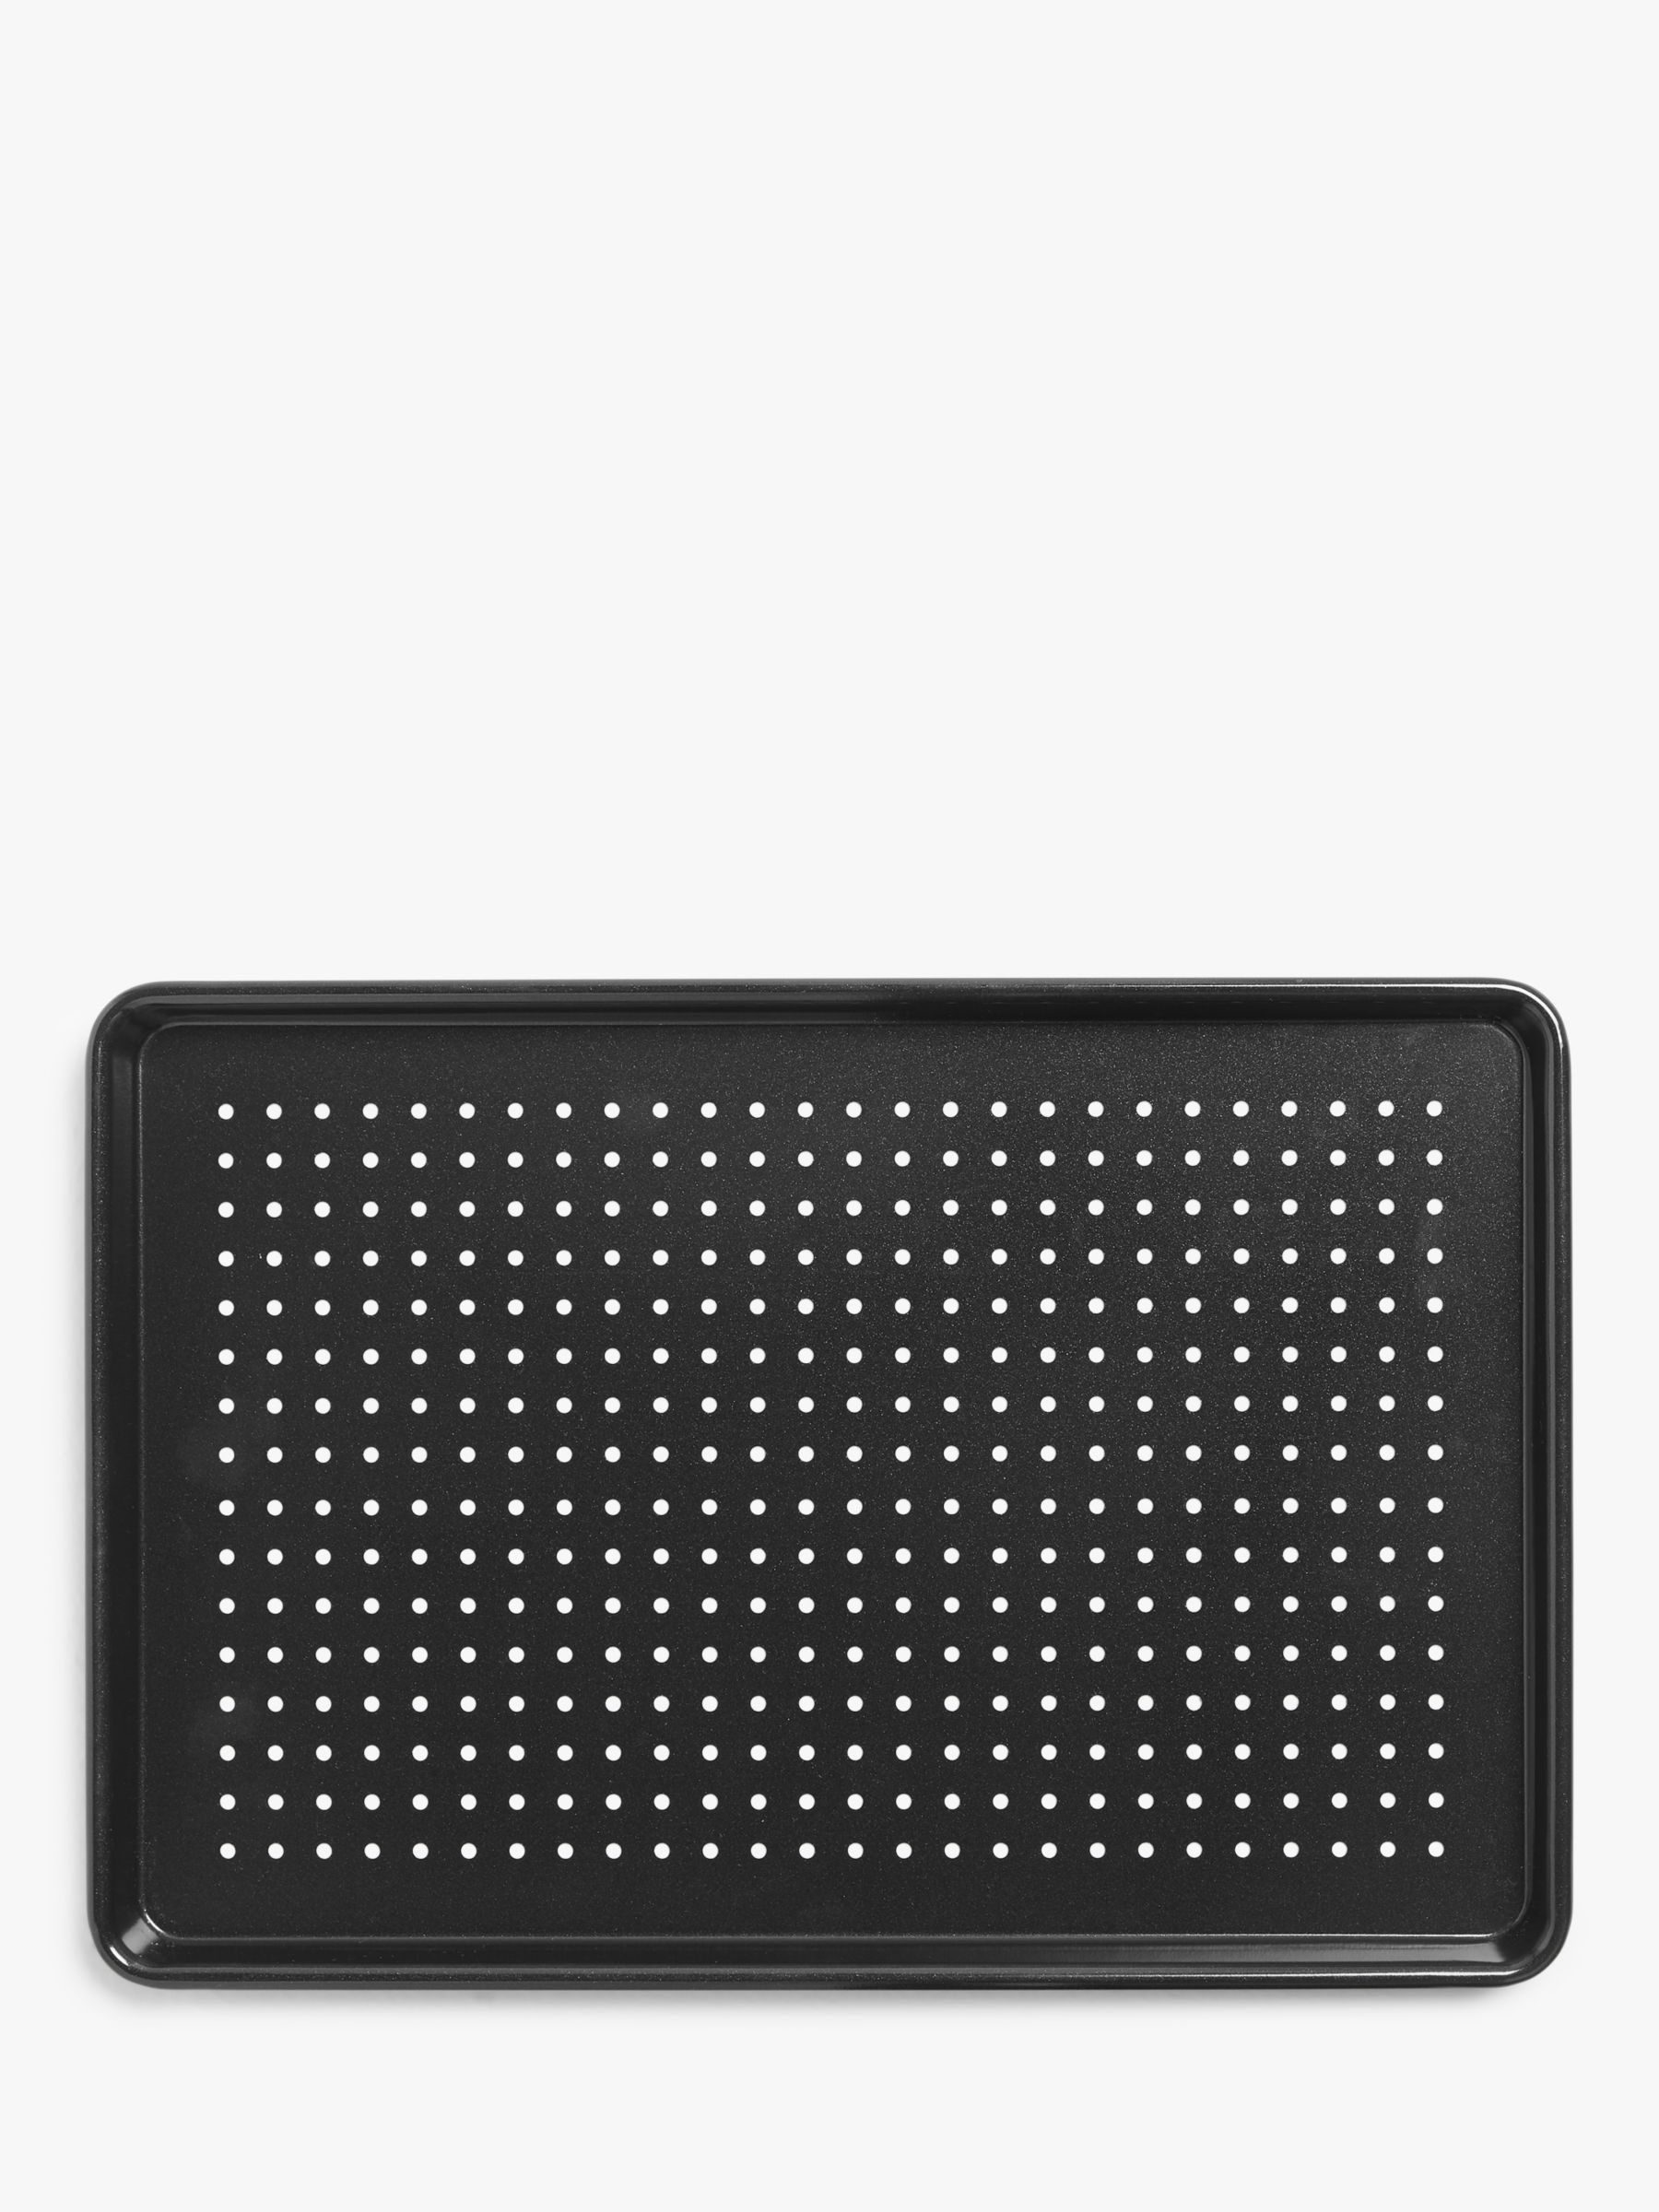 John Lewis & Partners Professional Perforated Non-Stick Baking Tray, 27cm